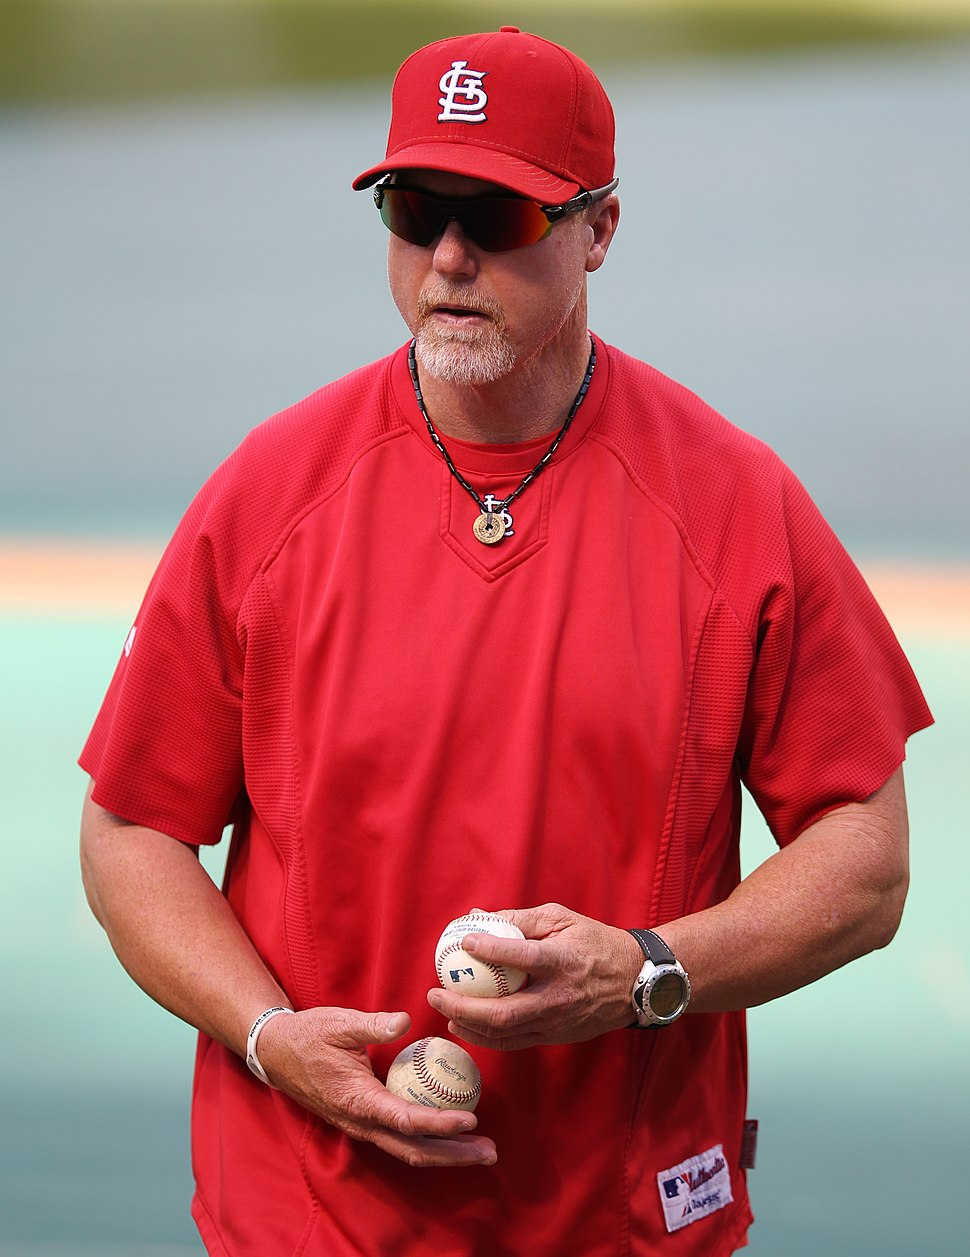 Mark McGwire on June 29, 2011